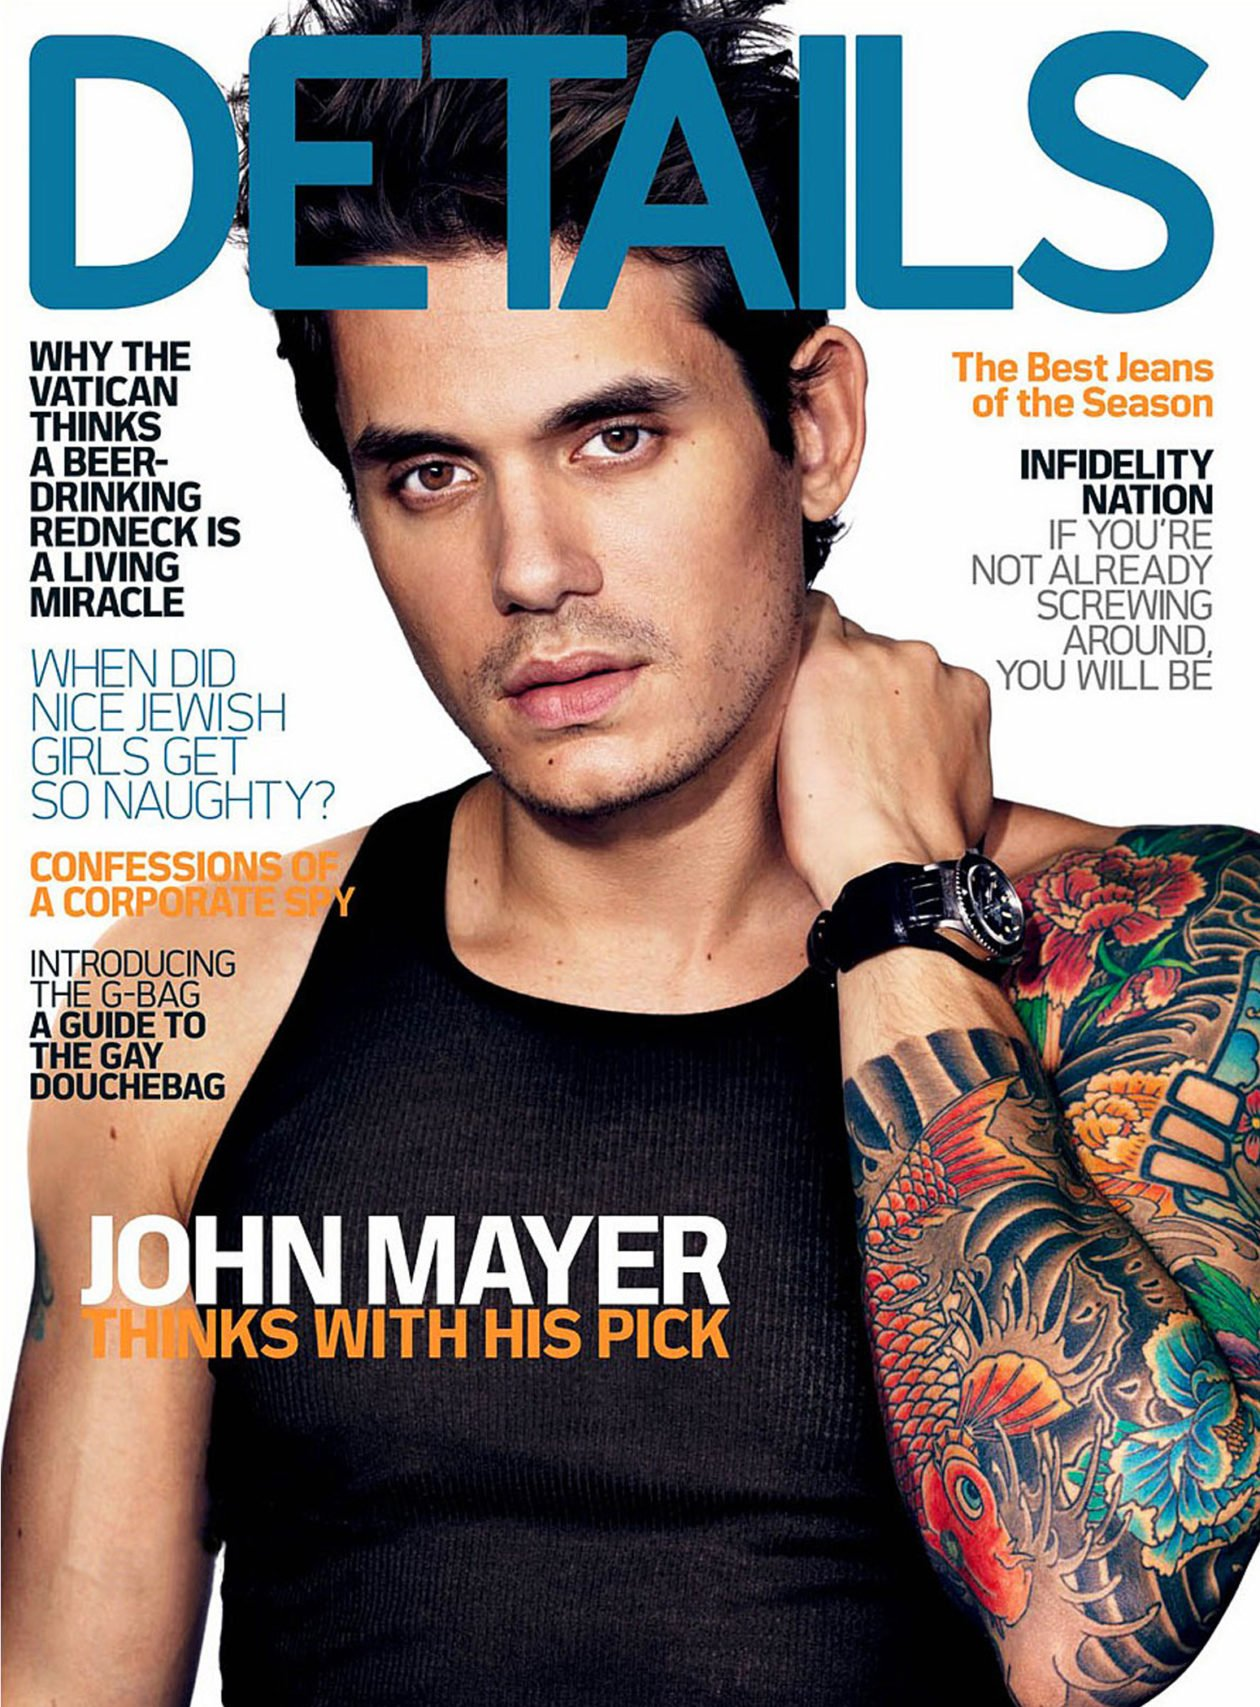 John Mayer / photo: Details Magazine